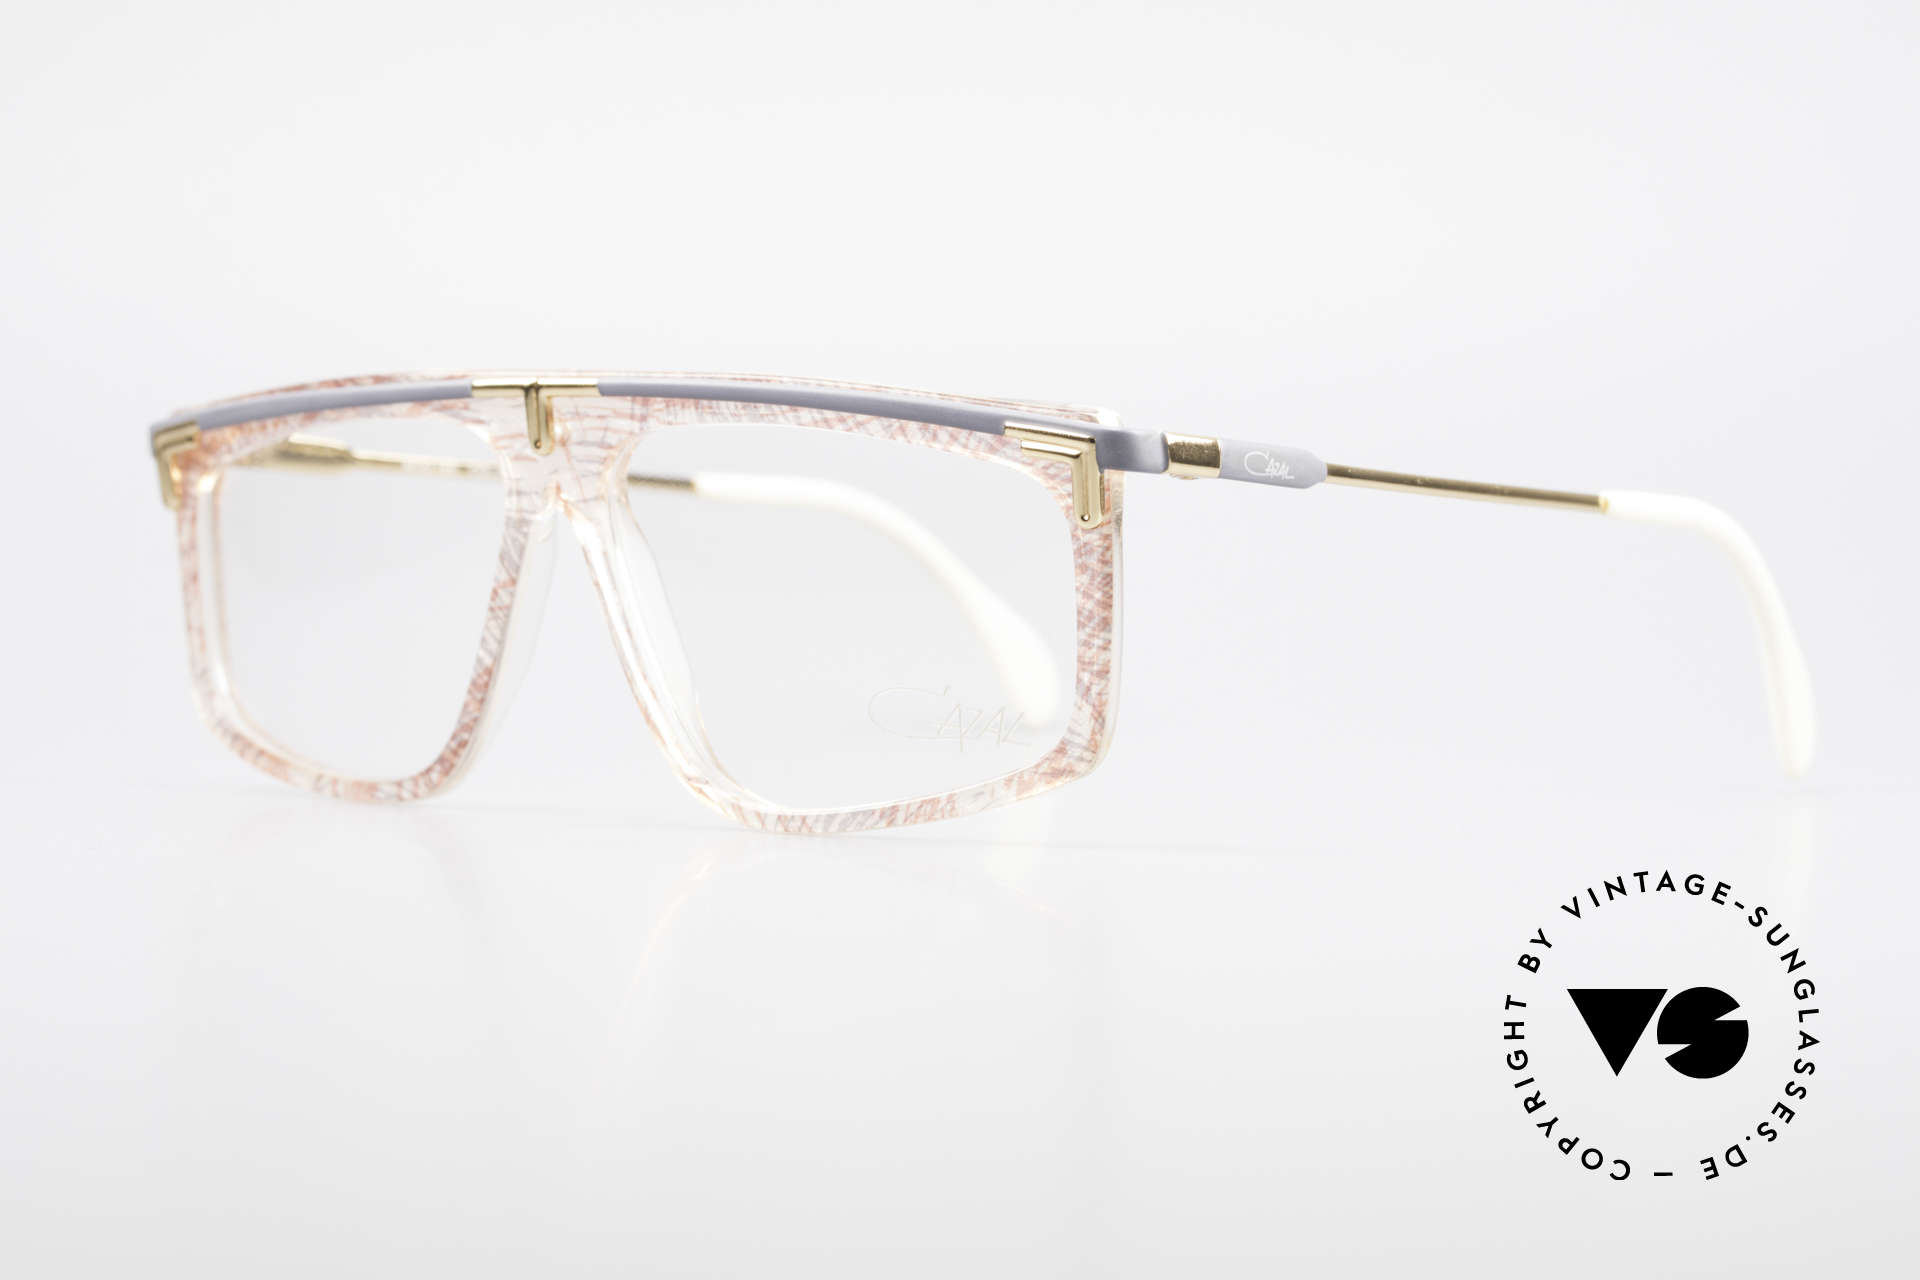 Cazal 190 Rare Old Vintage Frame HipHop, truly vintage (CAZAL ORIGINAL) and NO RETRO specs, Made for Men and Women